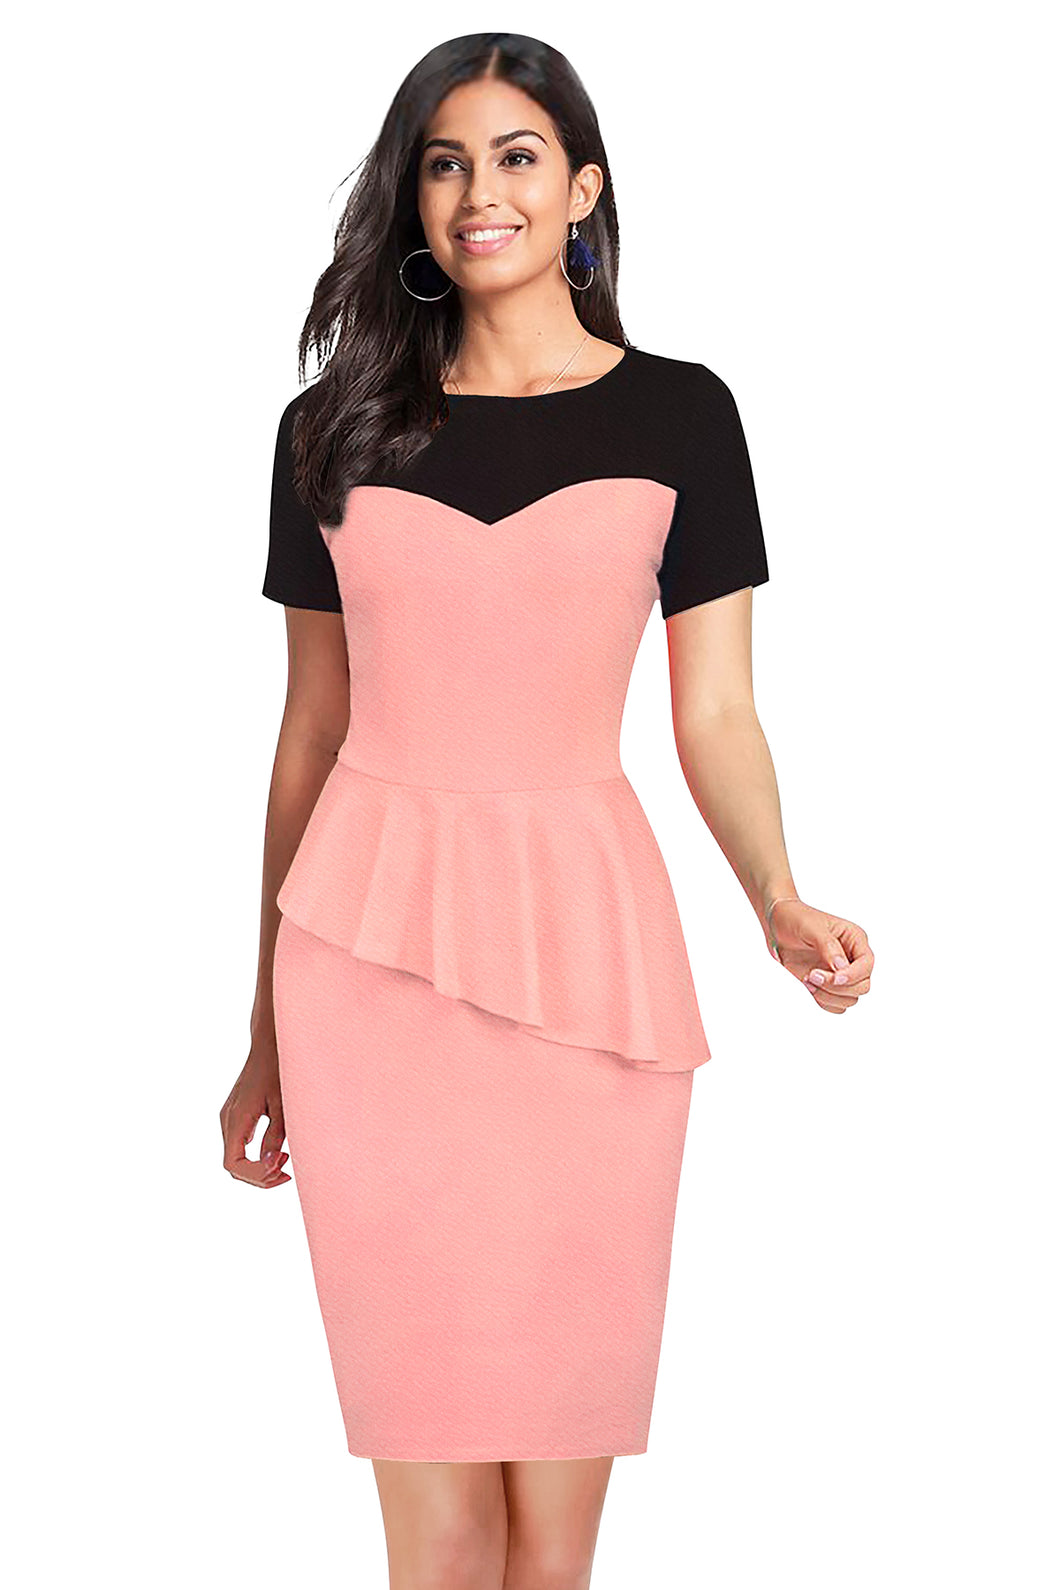 Ruffled Hem Bodycon Midi Dress - ForHar Closet